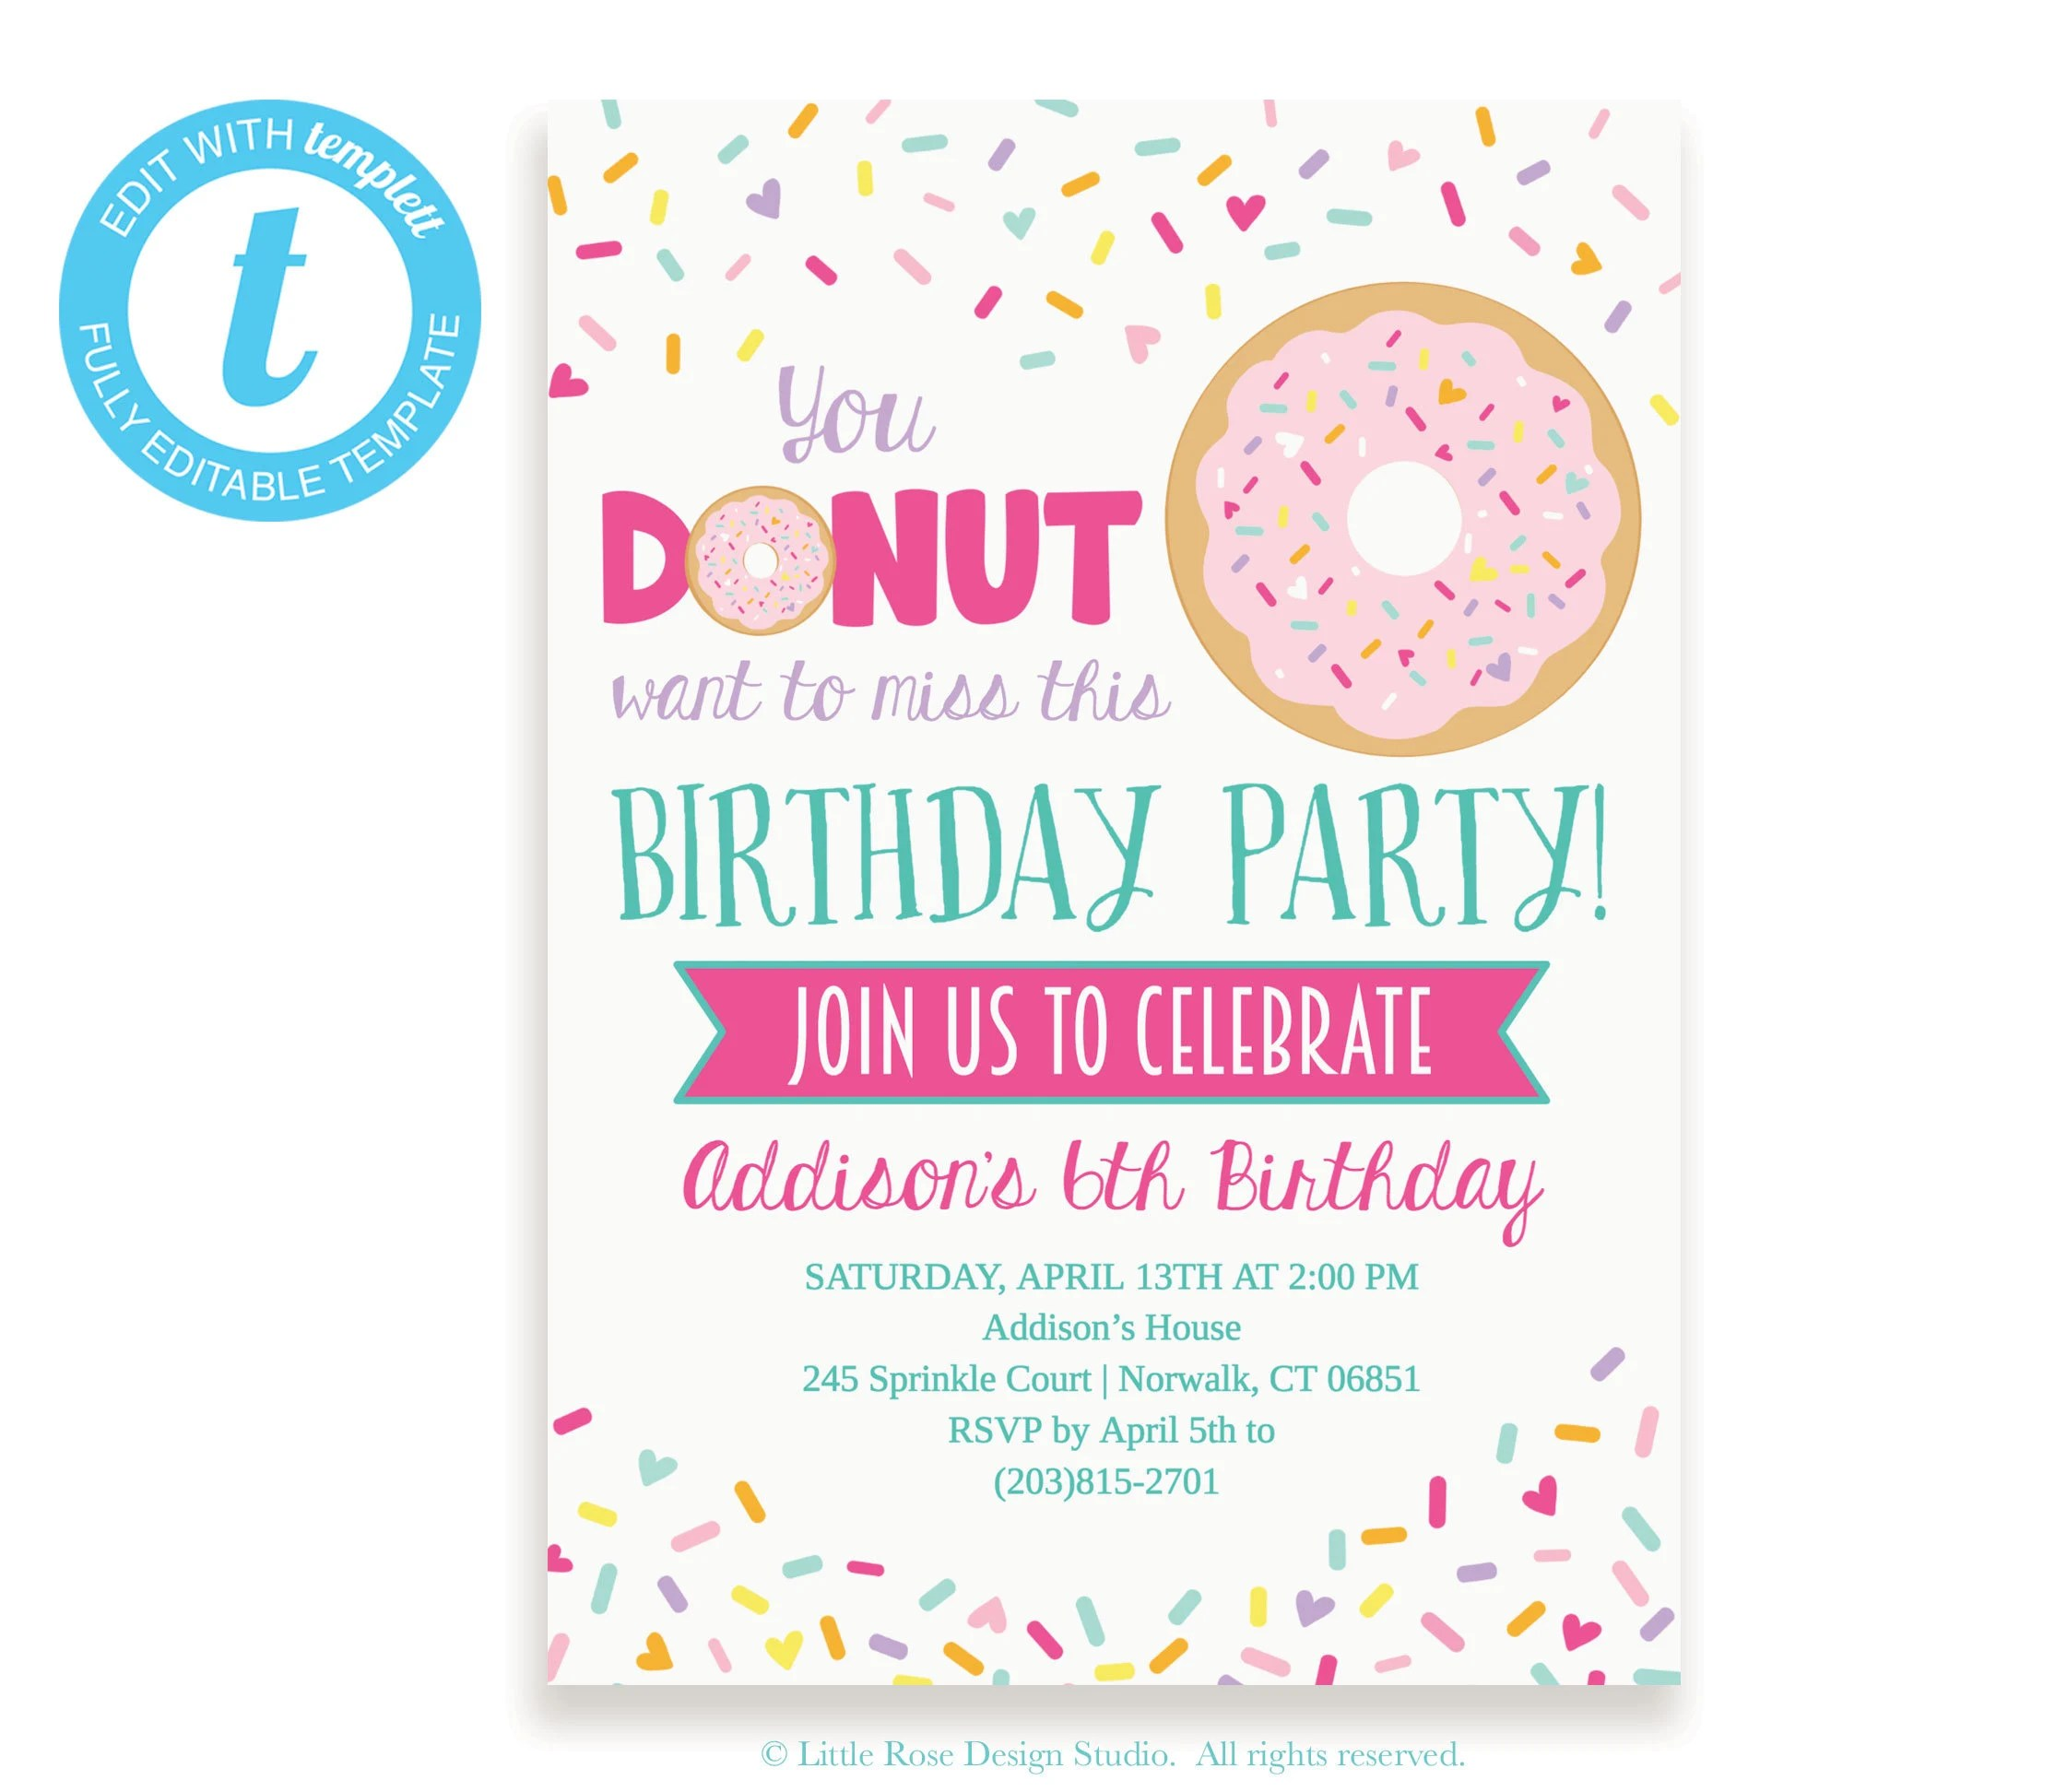 Donut Party Invitation Editable Template / Birthday Party Etsy